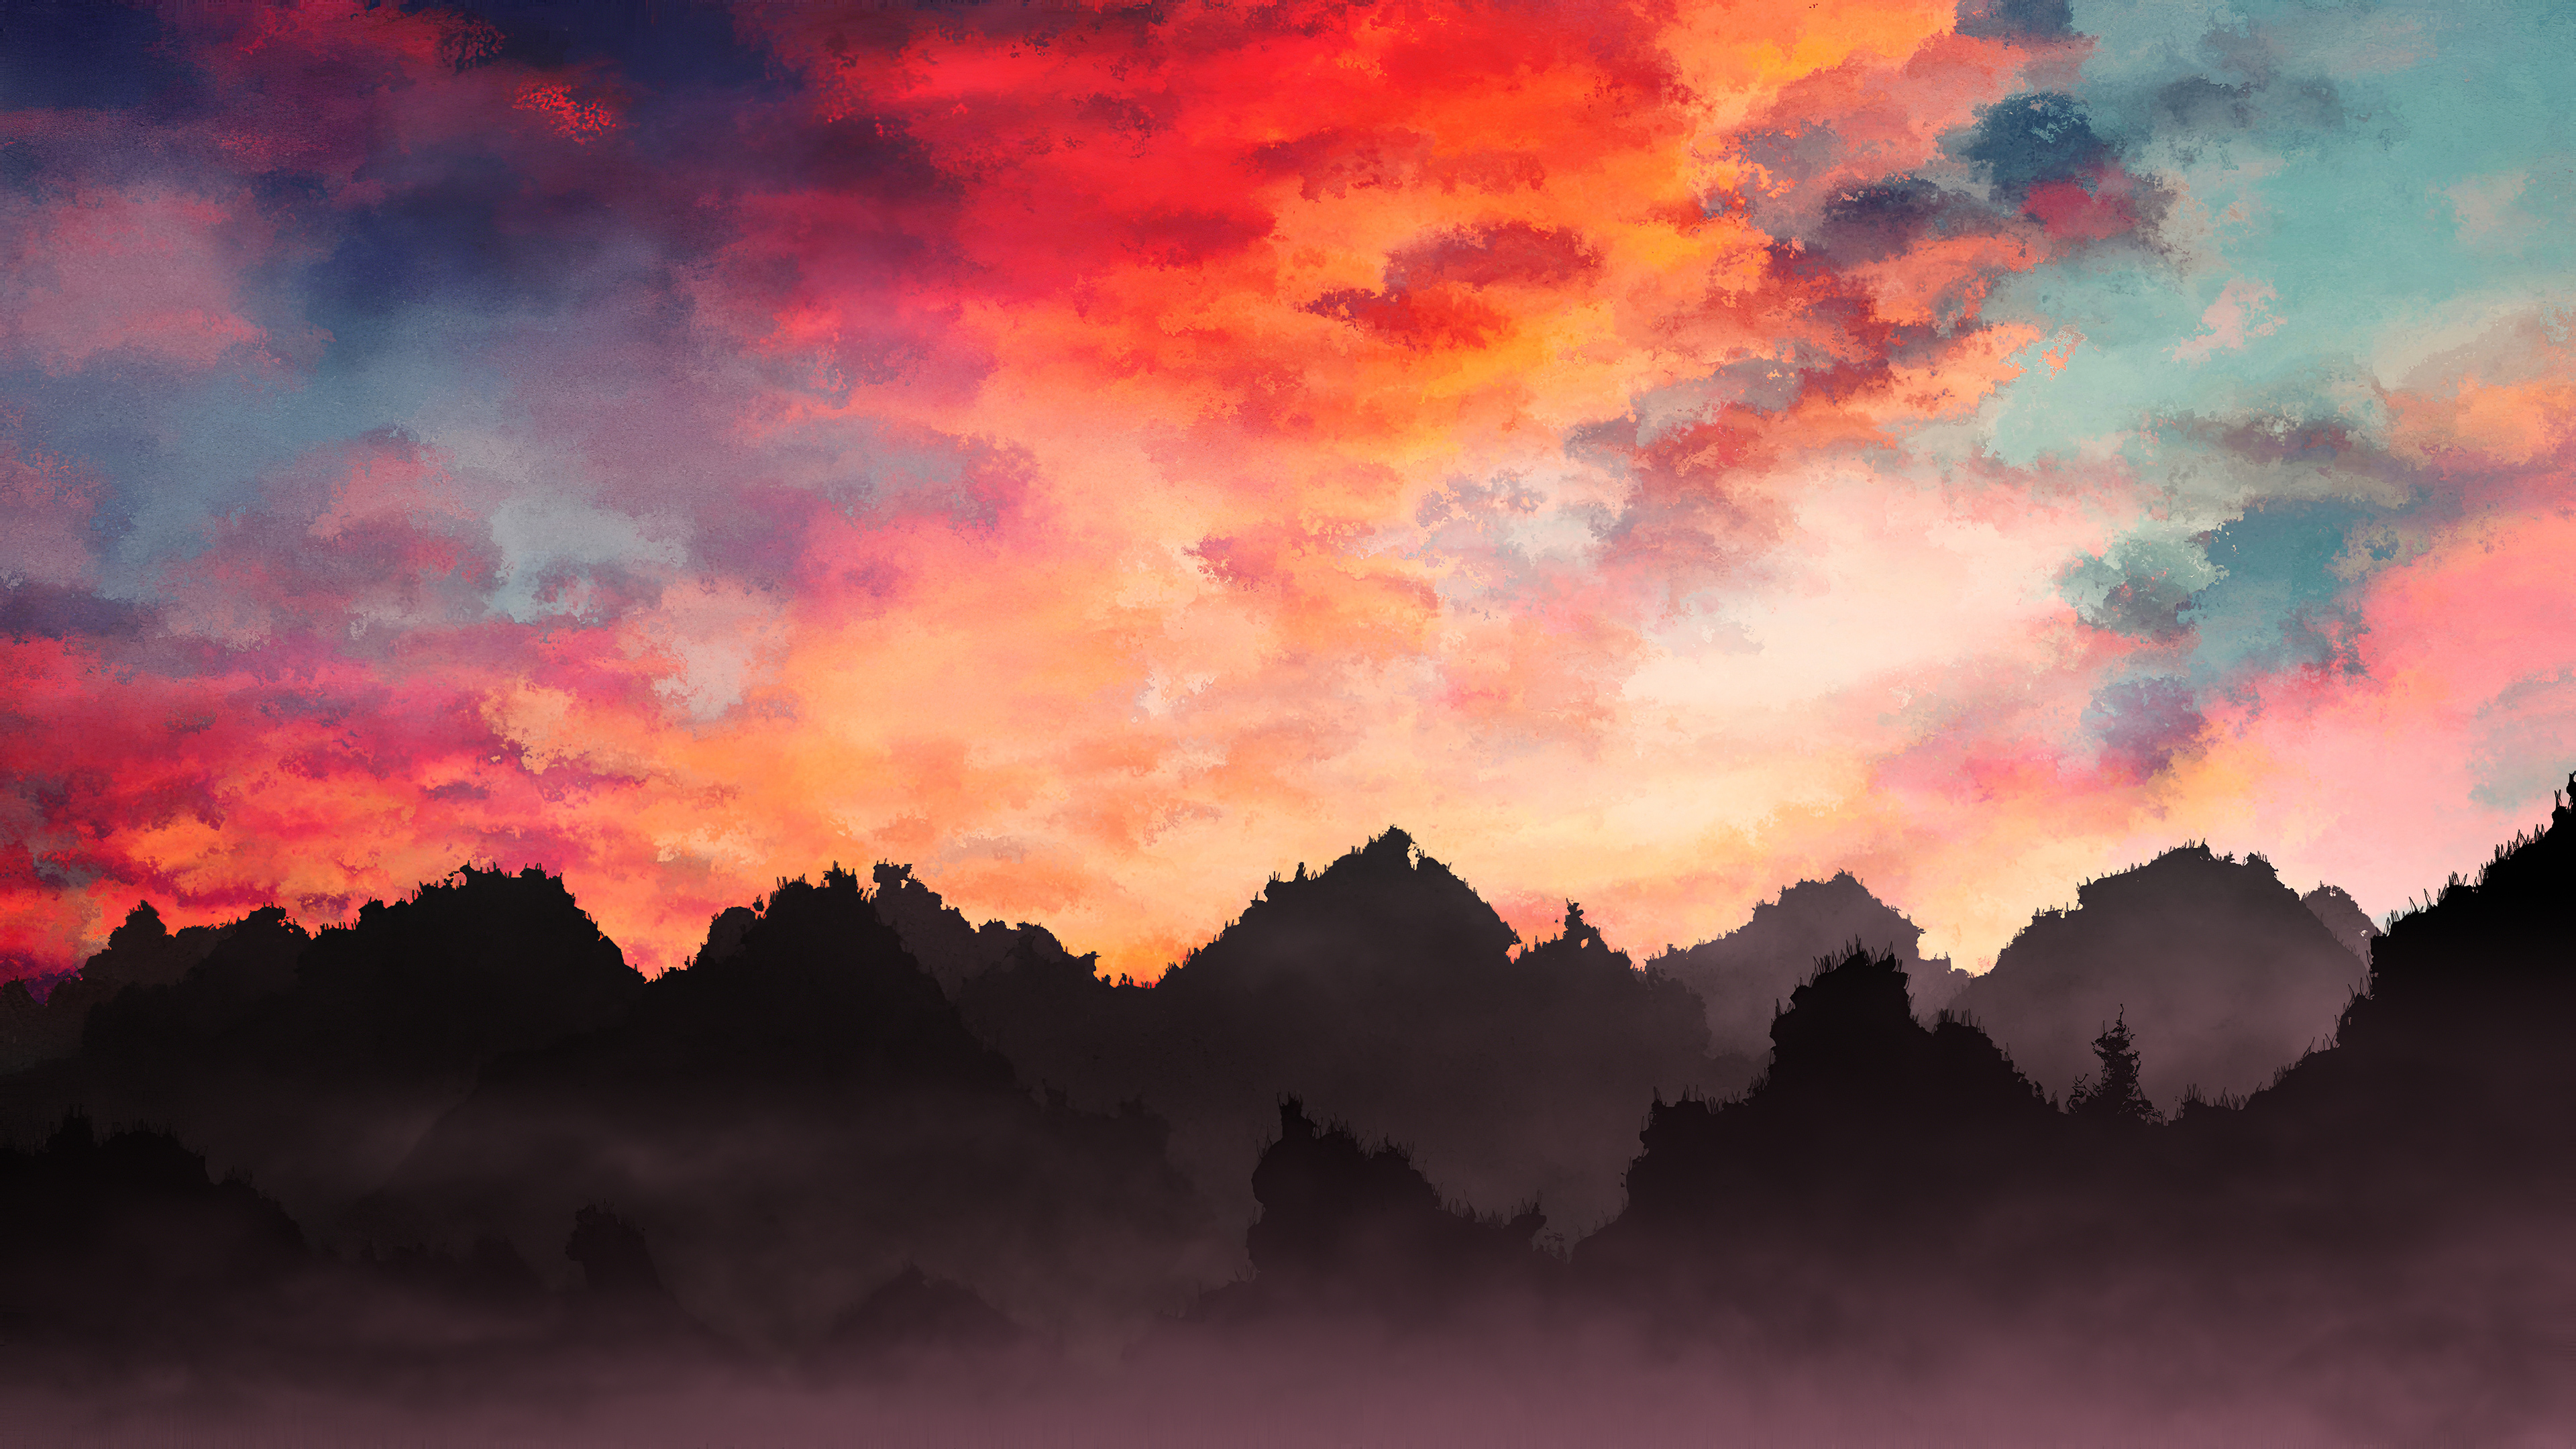 Wallpaper Mountains painting with mist at sunset